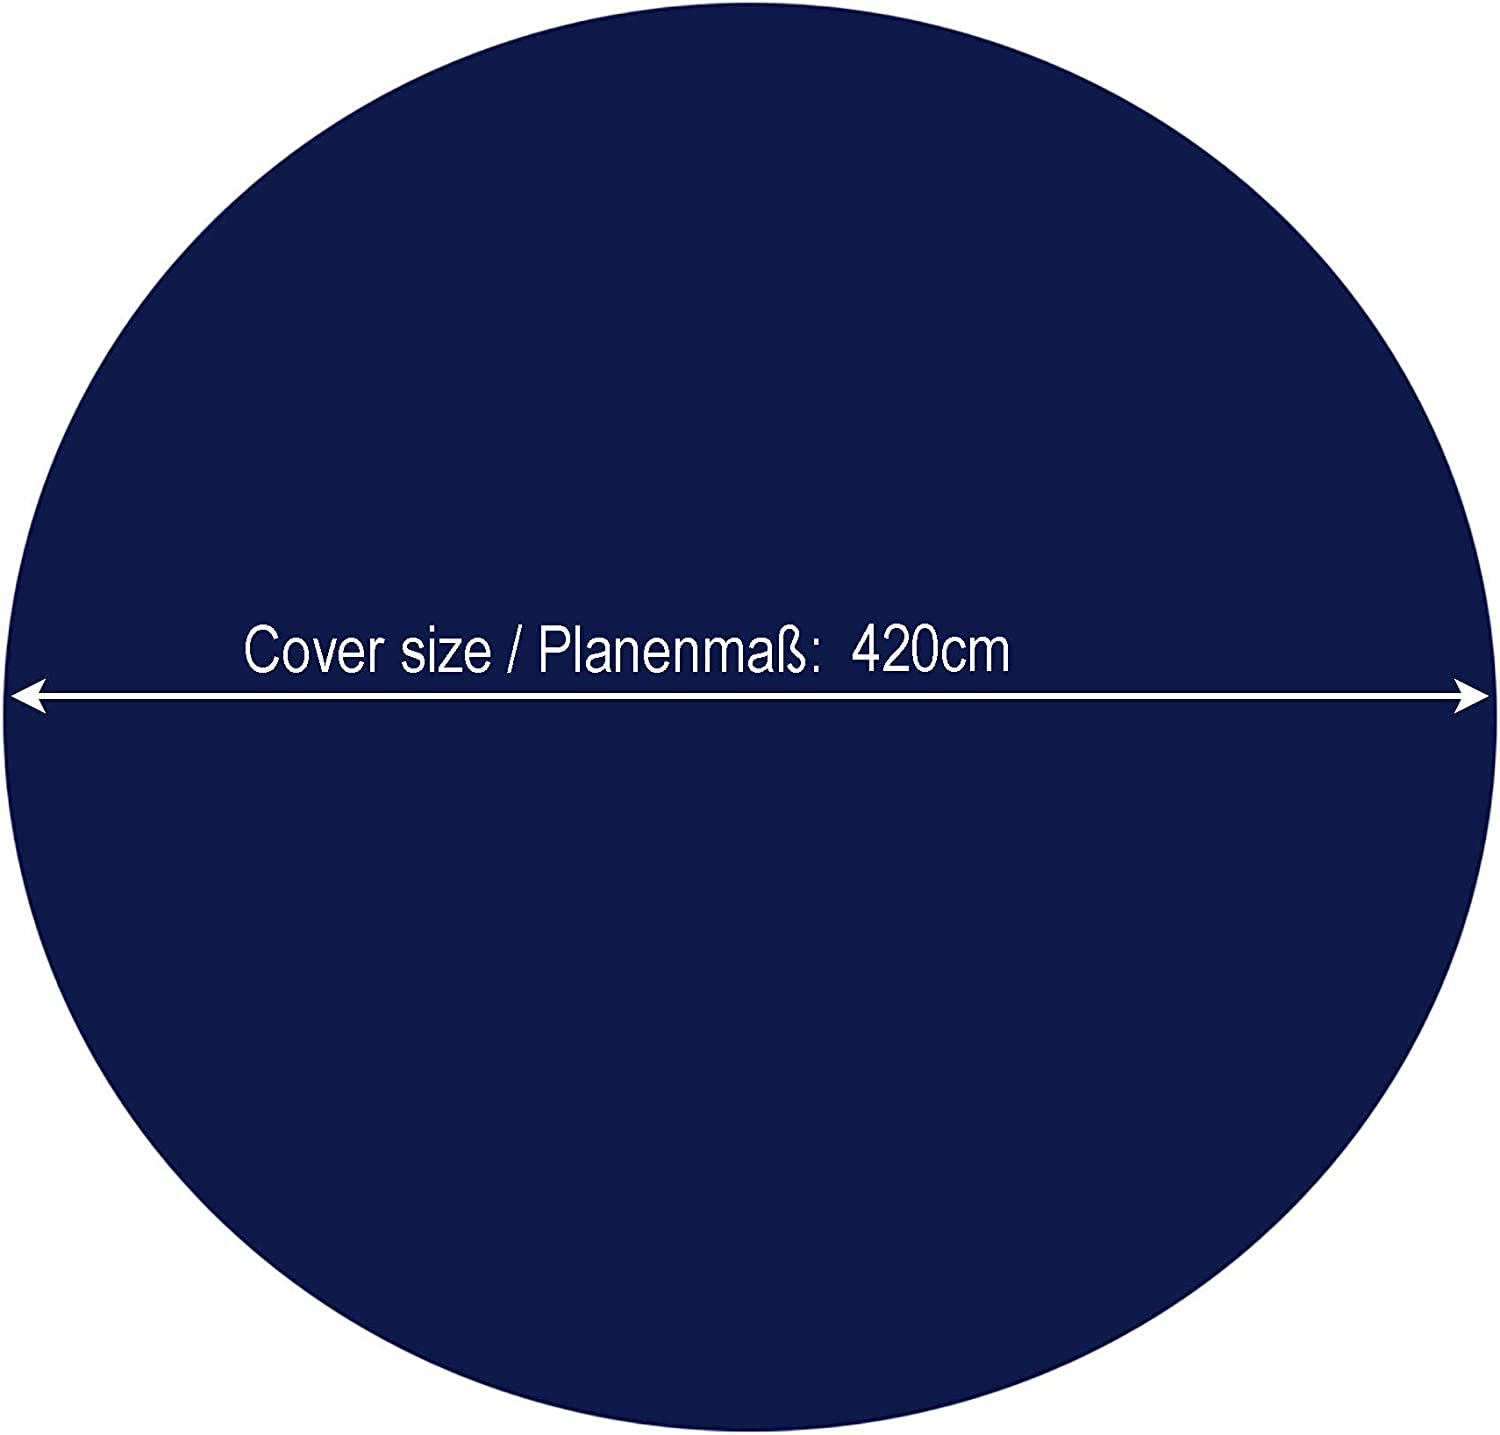 QUICK STAR Winter Swimming Pool Cover Round 200g//m/² for Poolsize 320-366 cm Tarpaulin dimension /ø 420 cm Blue